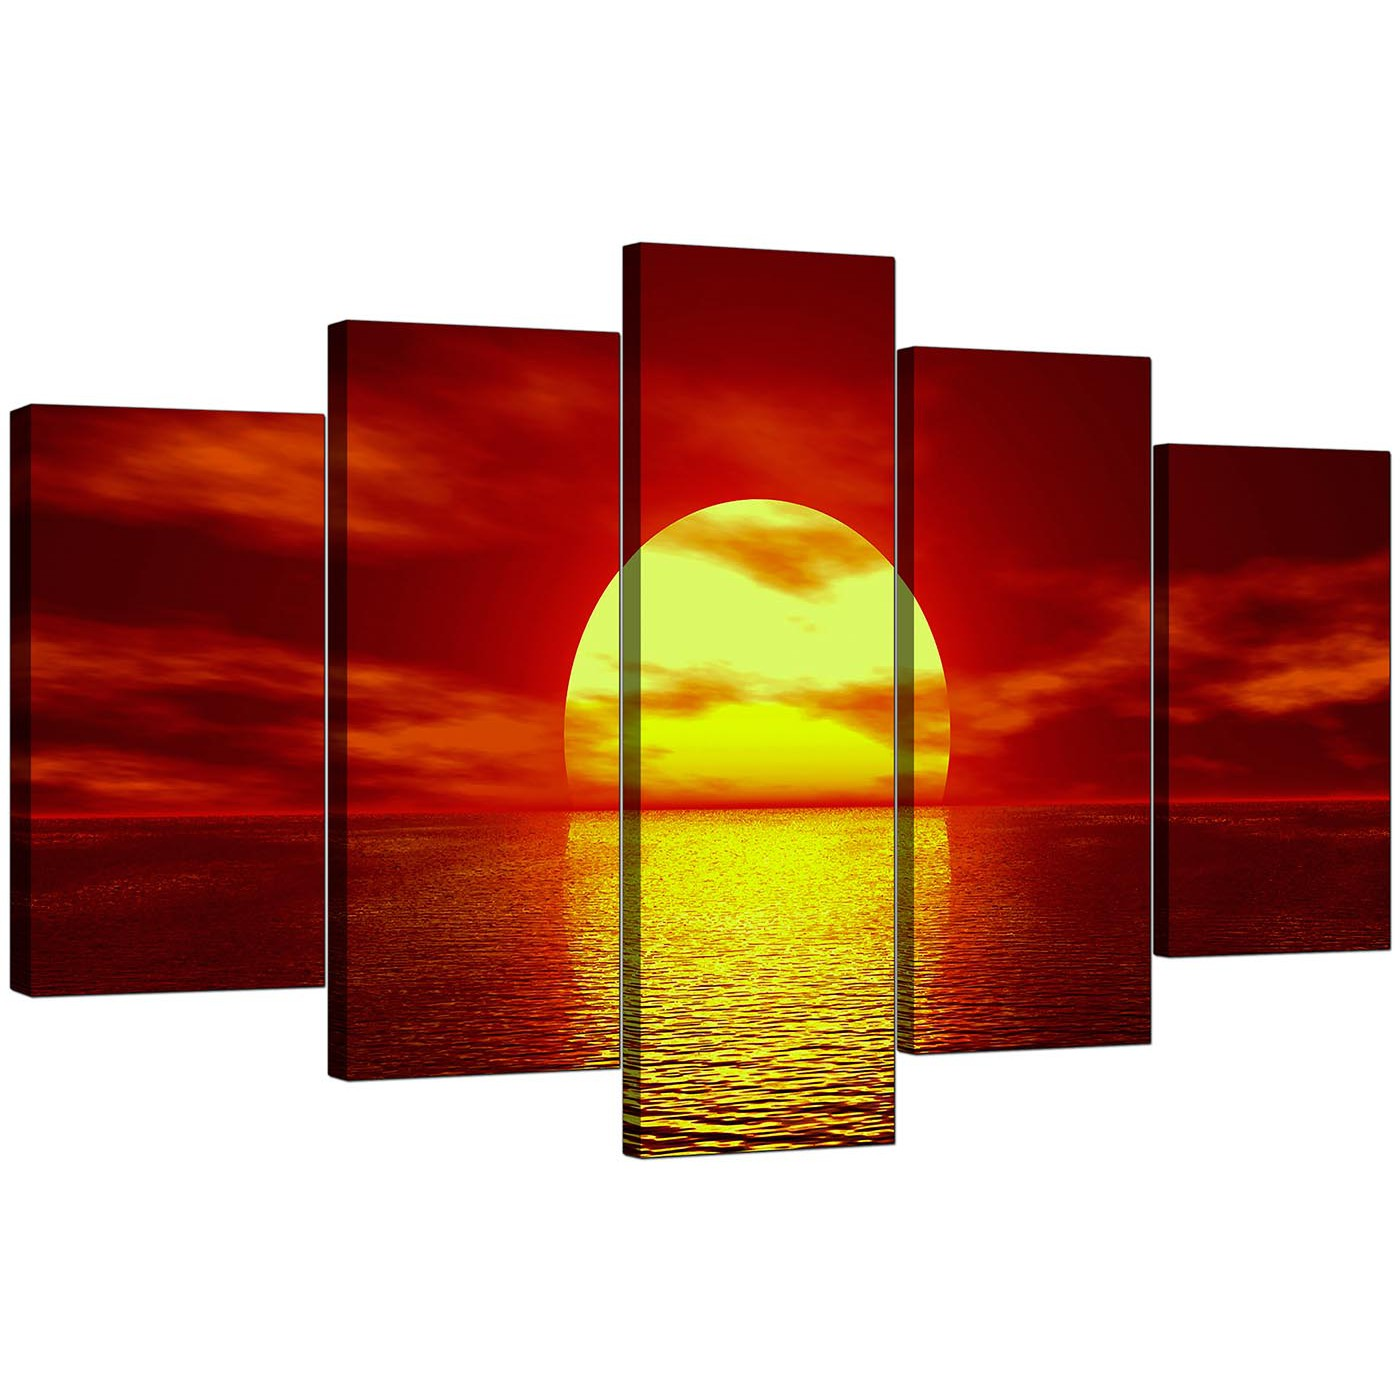 Large Canvas Prints Cheap Extra Large Sunset Canvas Prints Uk Set Of 5 In Red